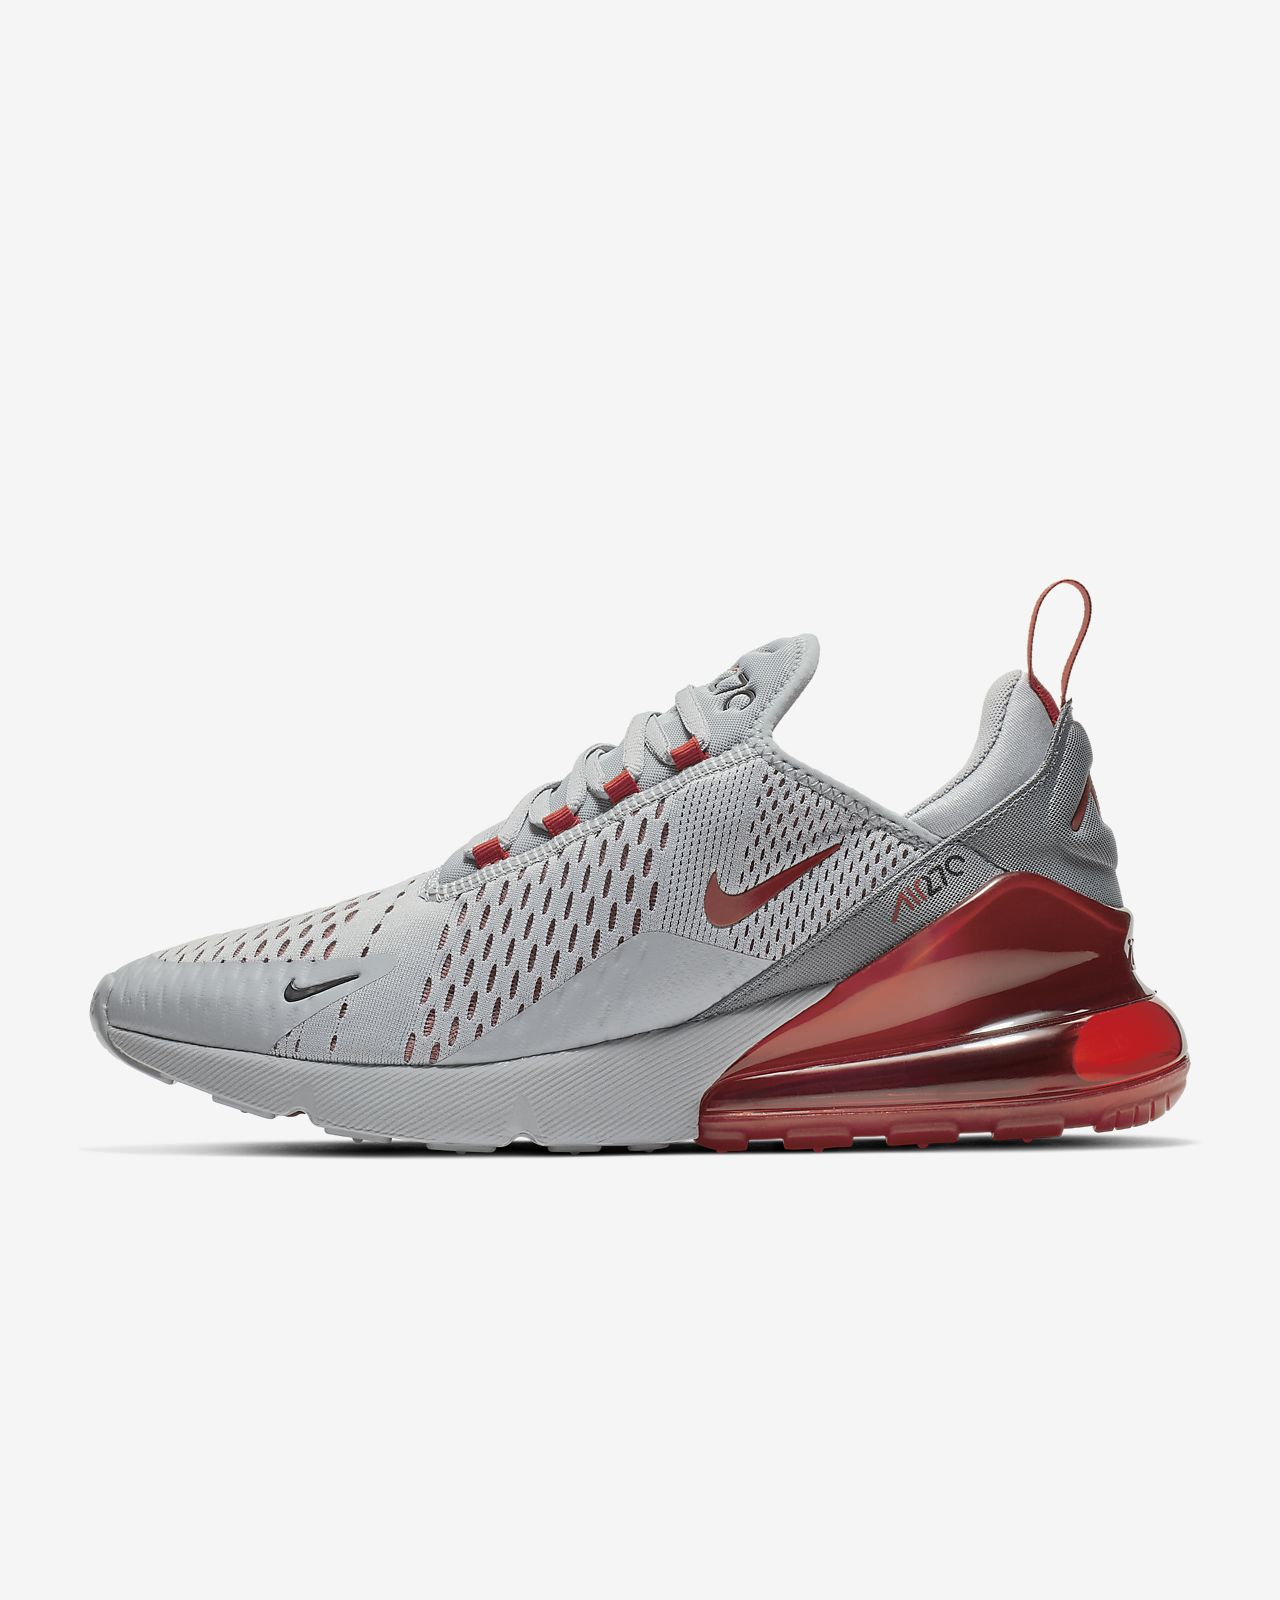 meet 26290 26b80 Men s Shoe. Nike Air Max 270